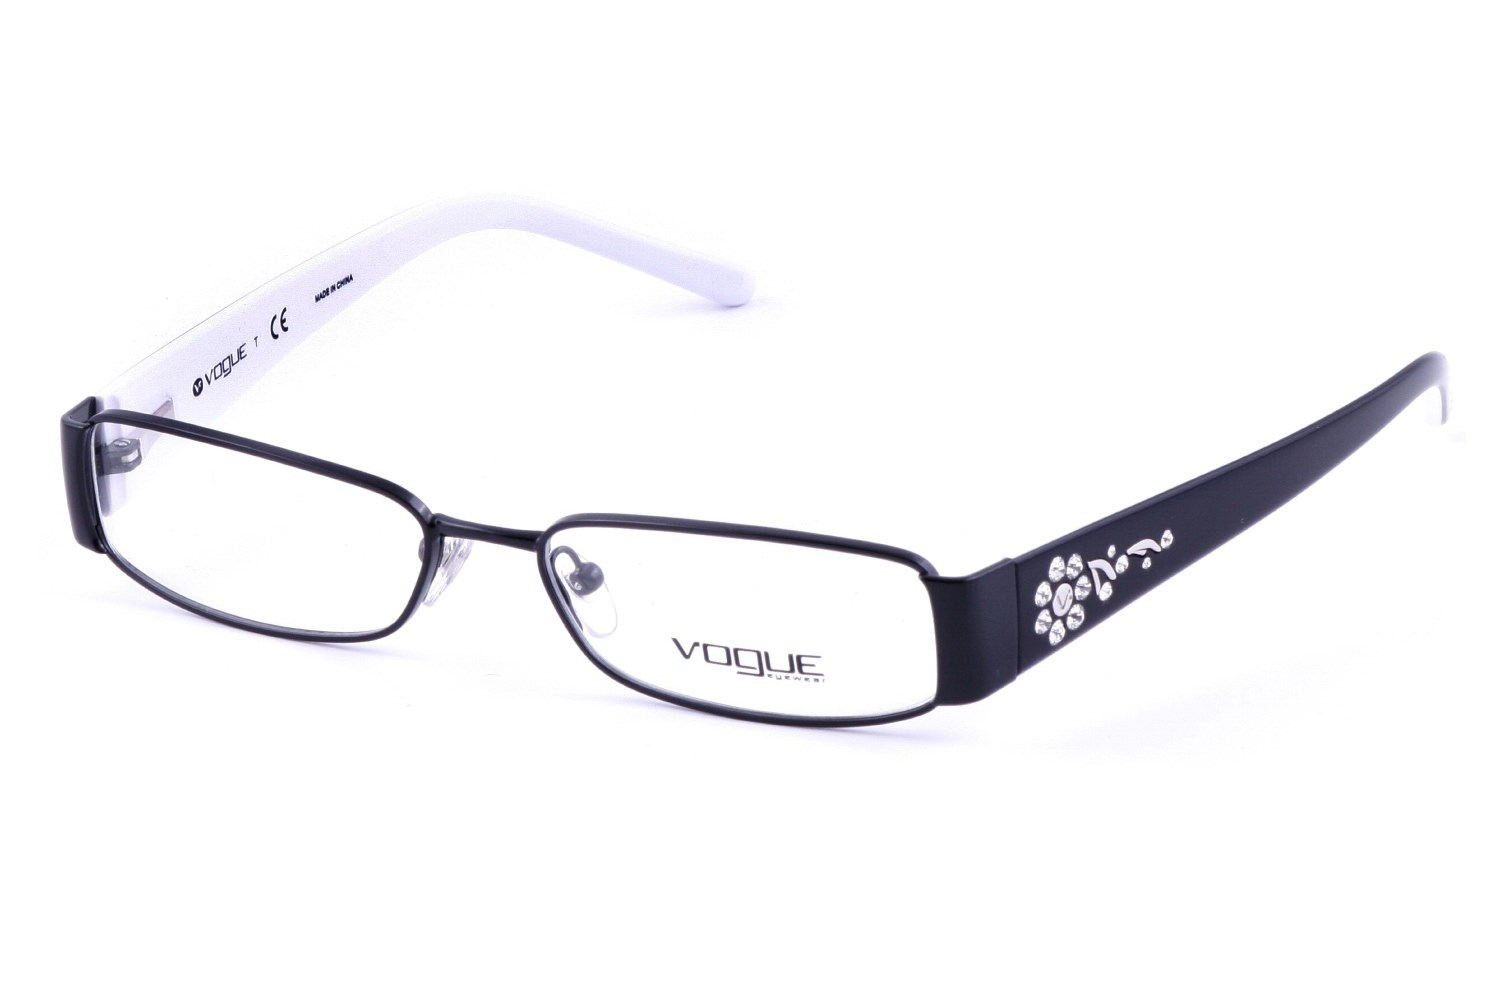 Vogue Vo 3691b Prescription Eyeglasses Frames Oope